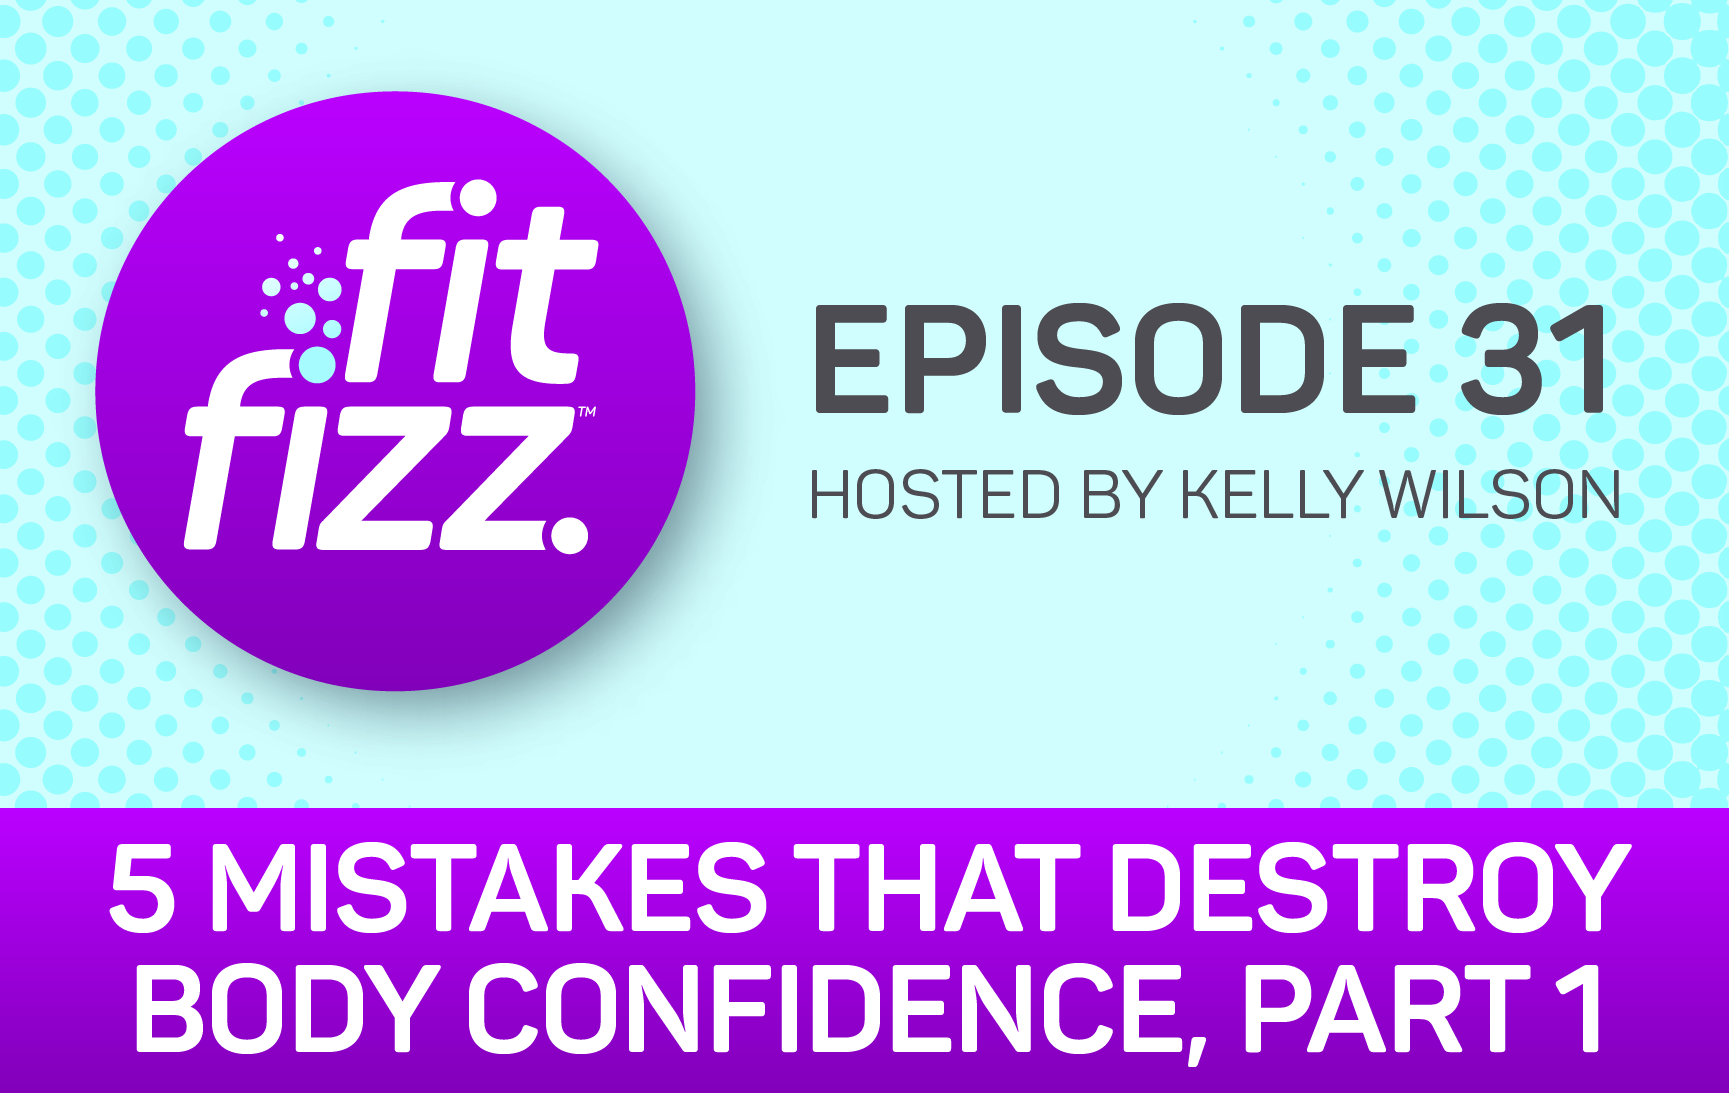 EP. 31: 5 Mistakes That Destroy Body Confidence, Part 1